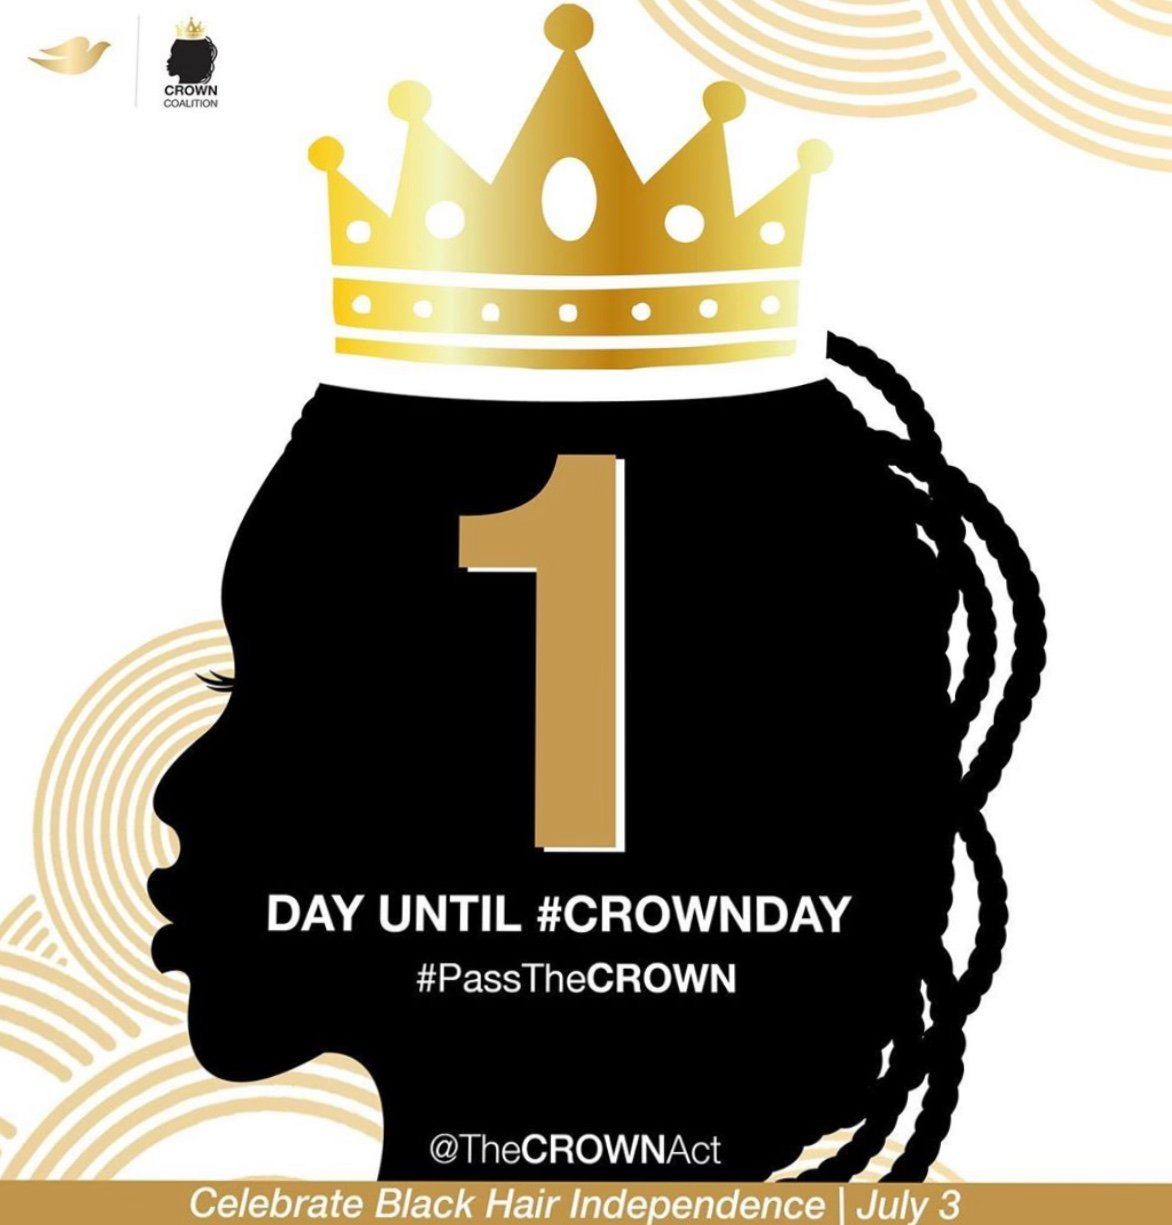 National CROWN Day: July 3 Celebrates Anniversary of Act Against Race-Based Hair Discrimination